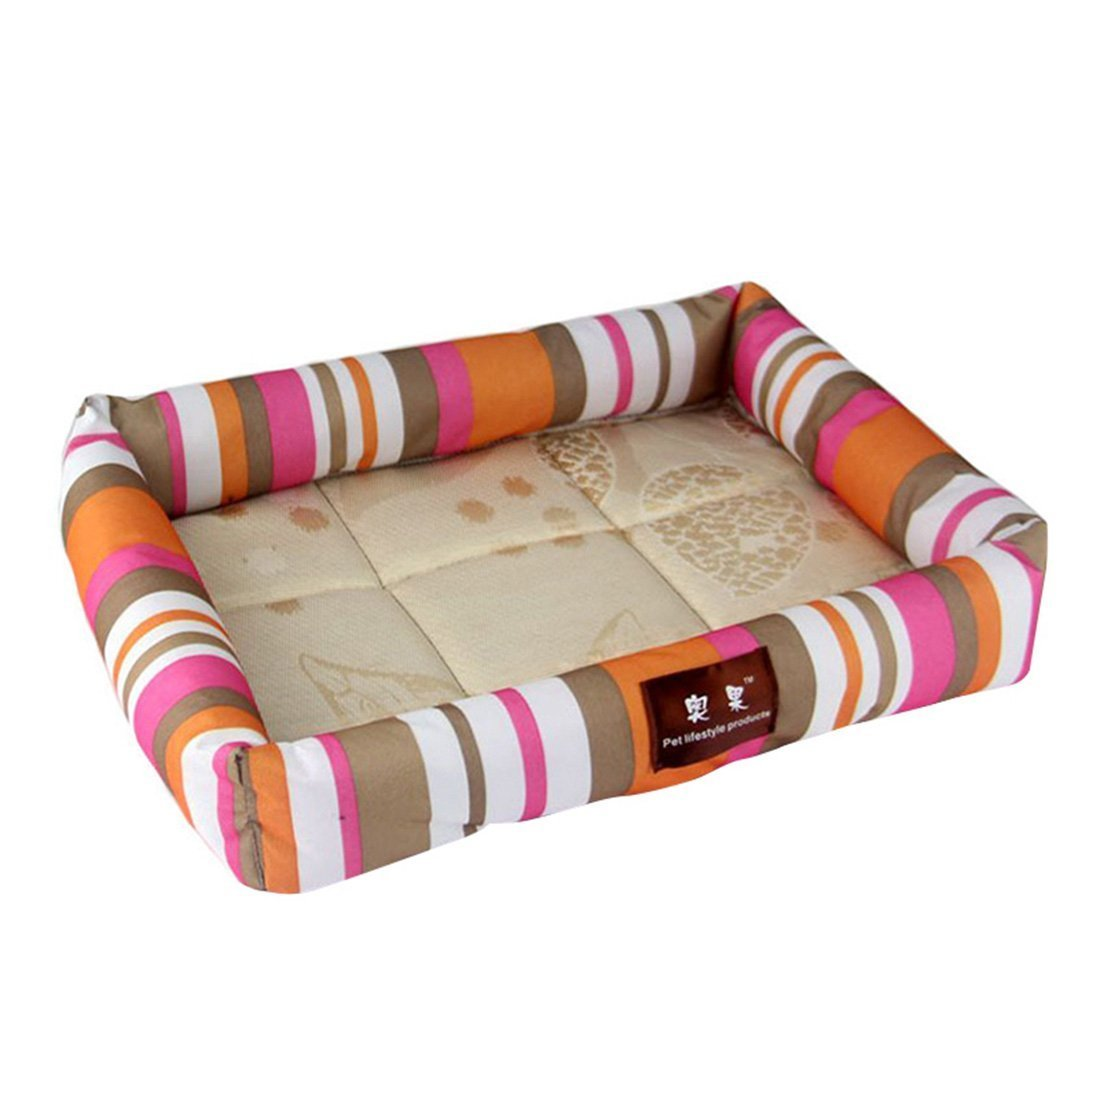 Chusea Cosy Blanket for Cat Summer Dog Bed Pet Cooling Sleeping Mat Cat Bed Cushion pink and orange XL